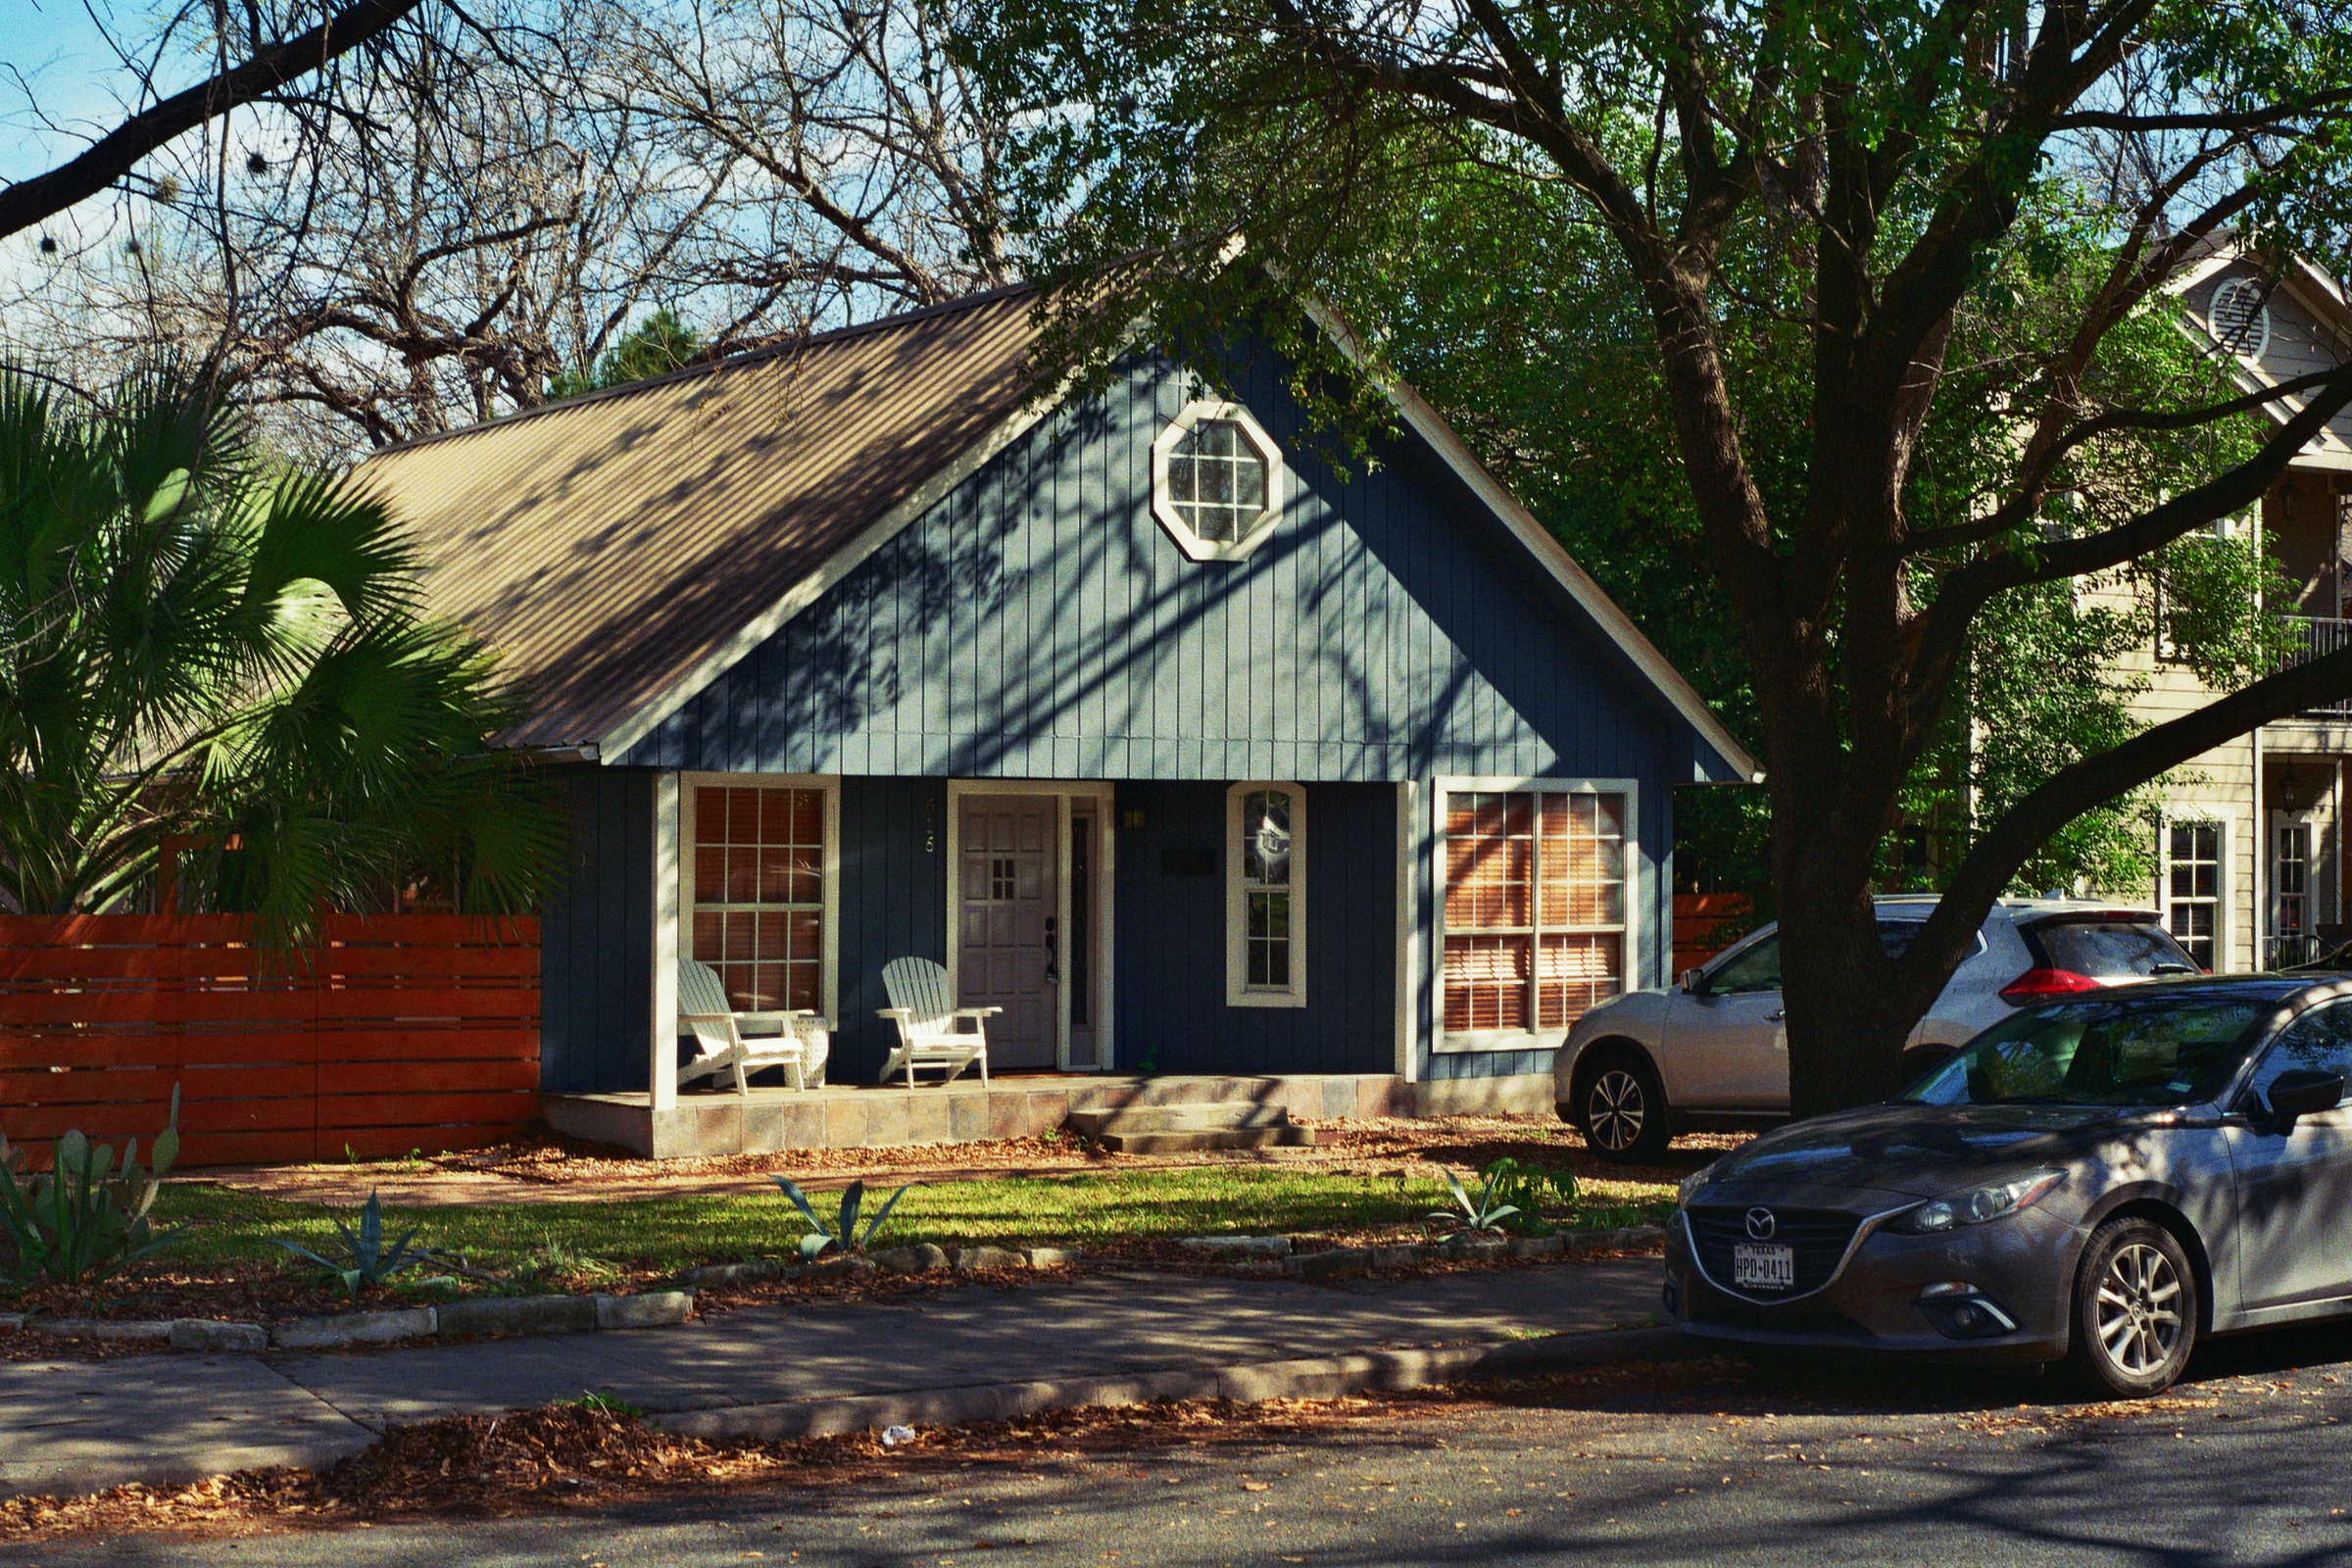 One of the many beautiful historic homes in Bouldin.  Austin, TX